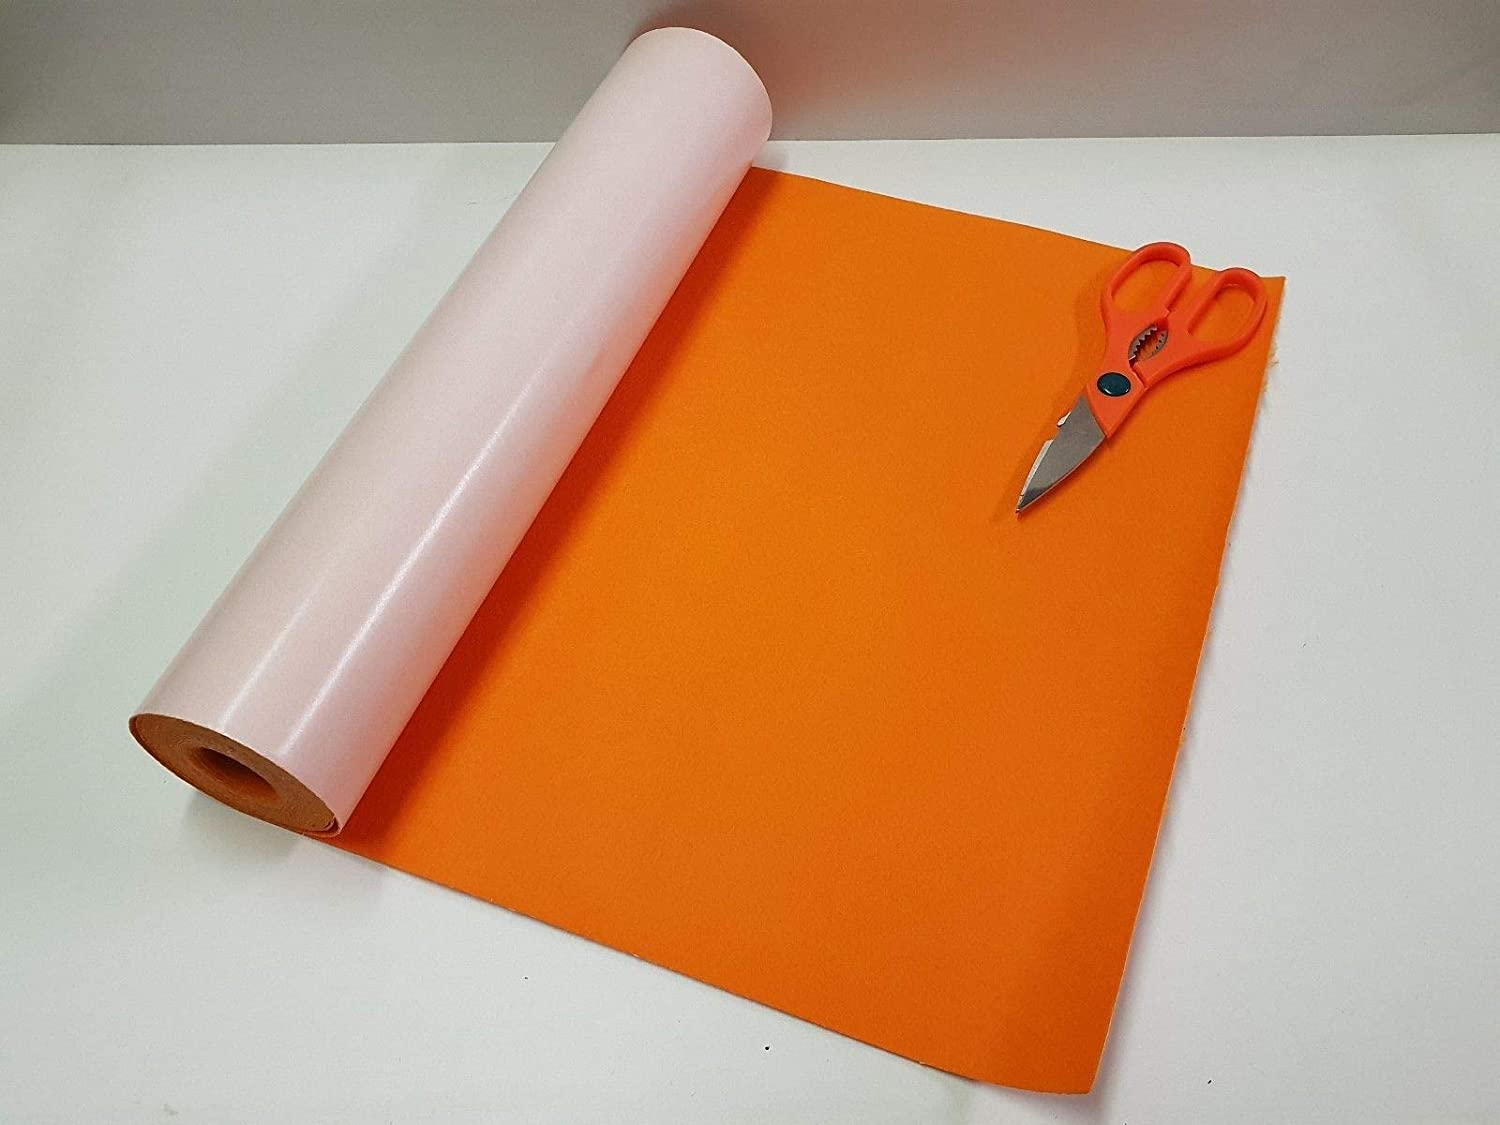 1/2 Mtr x 450mm Wide roll of Orange Sticky Back SELF Adhesive Felt/Baize GCH